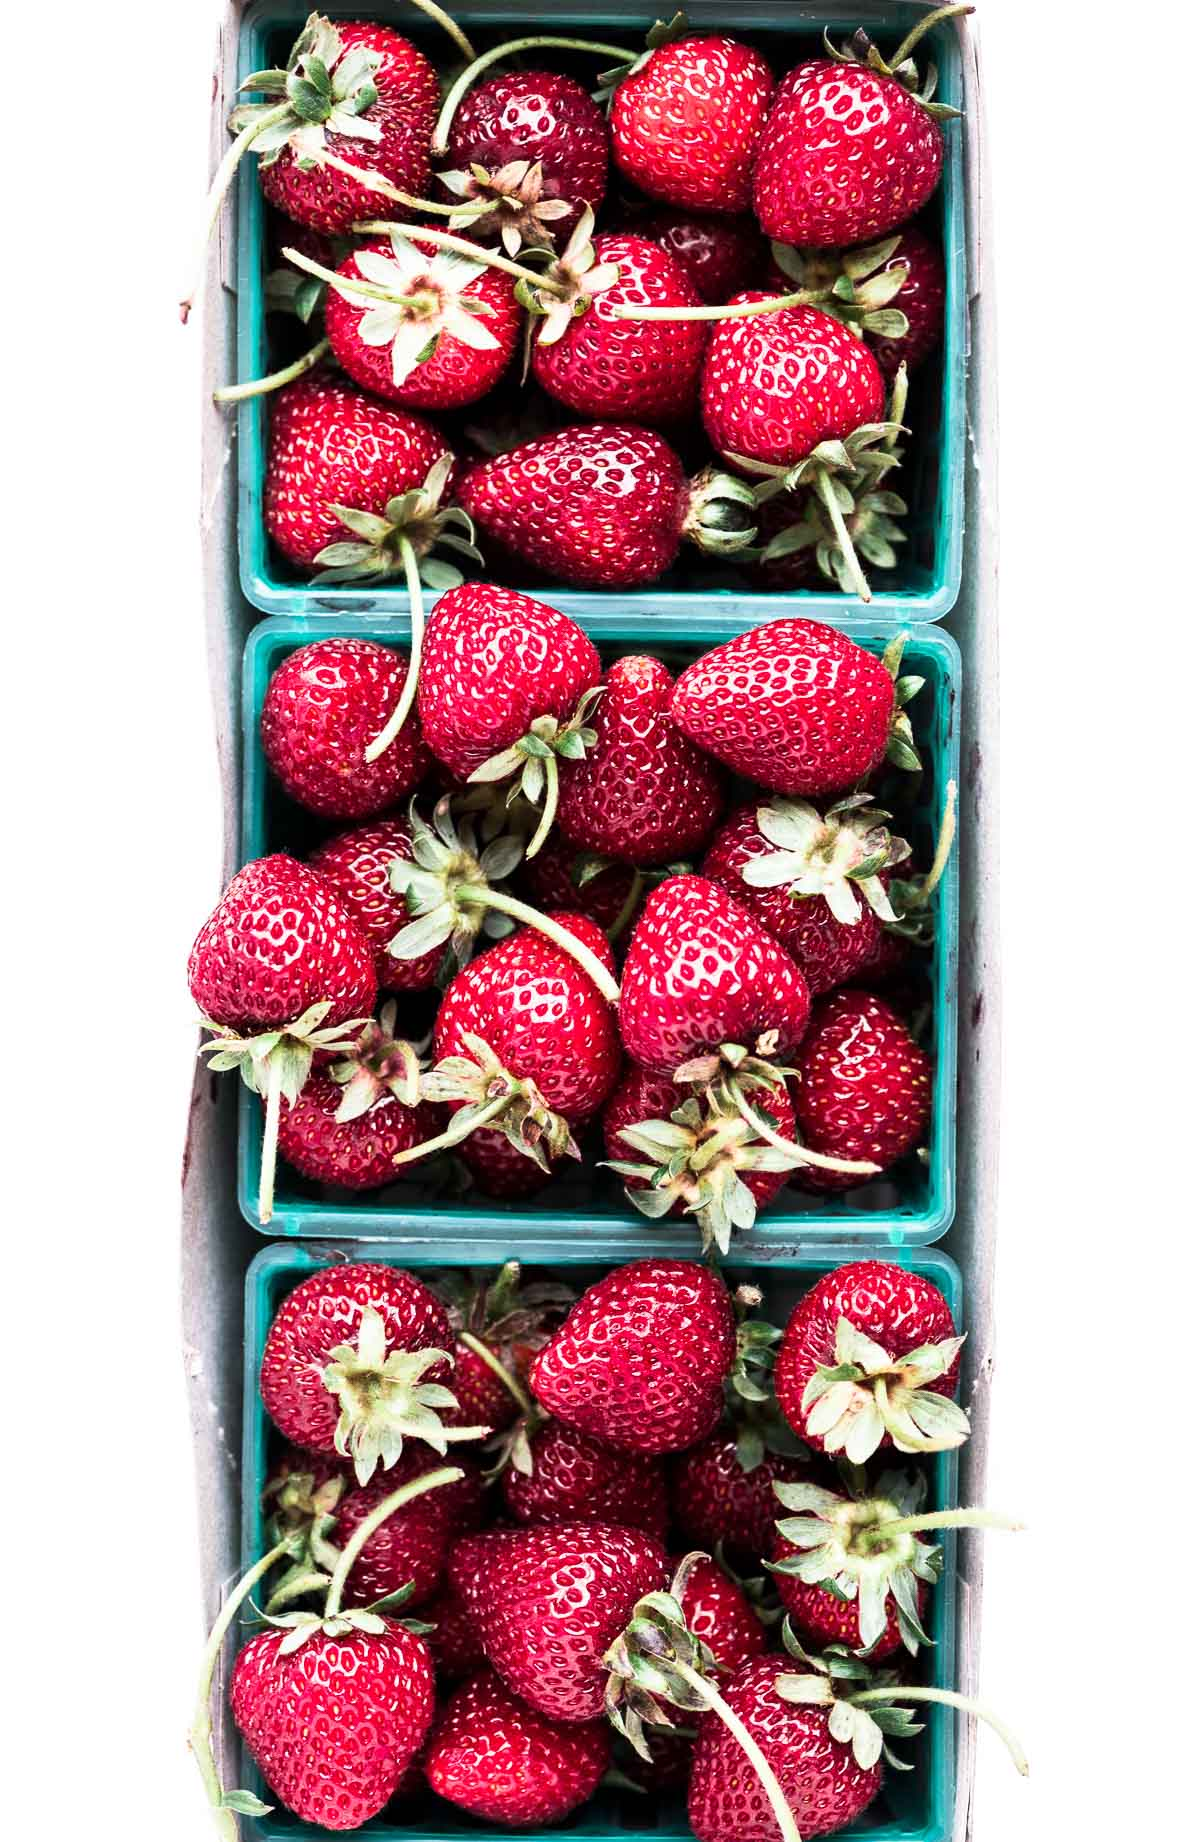 fresh strawberries for a strawberry salad